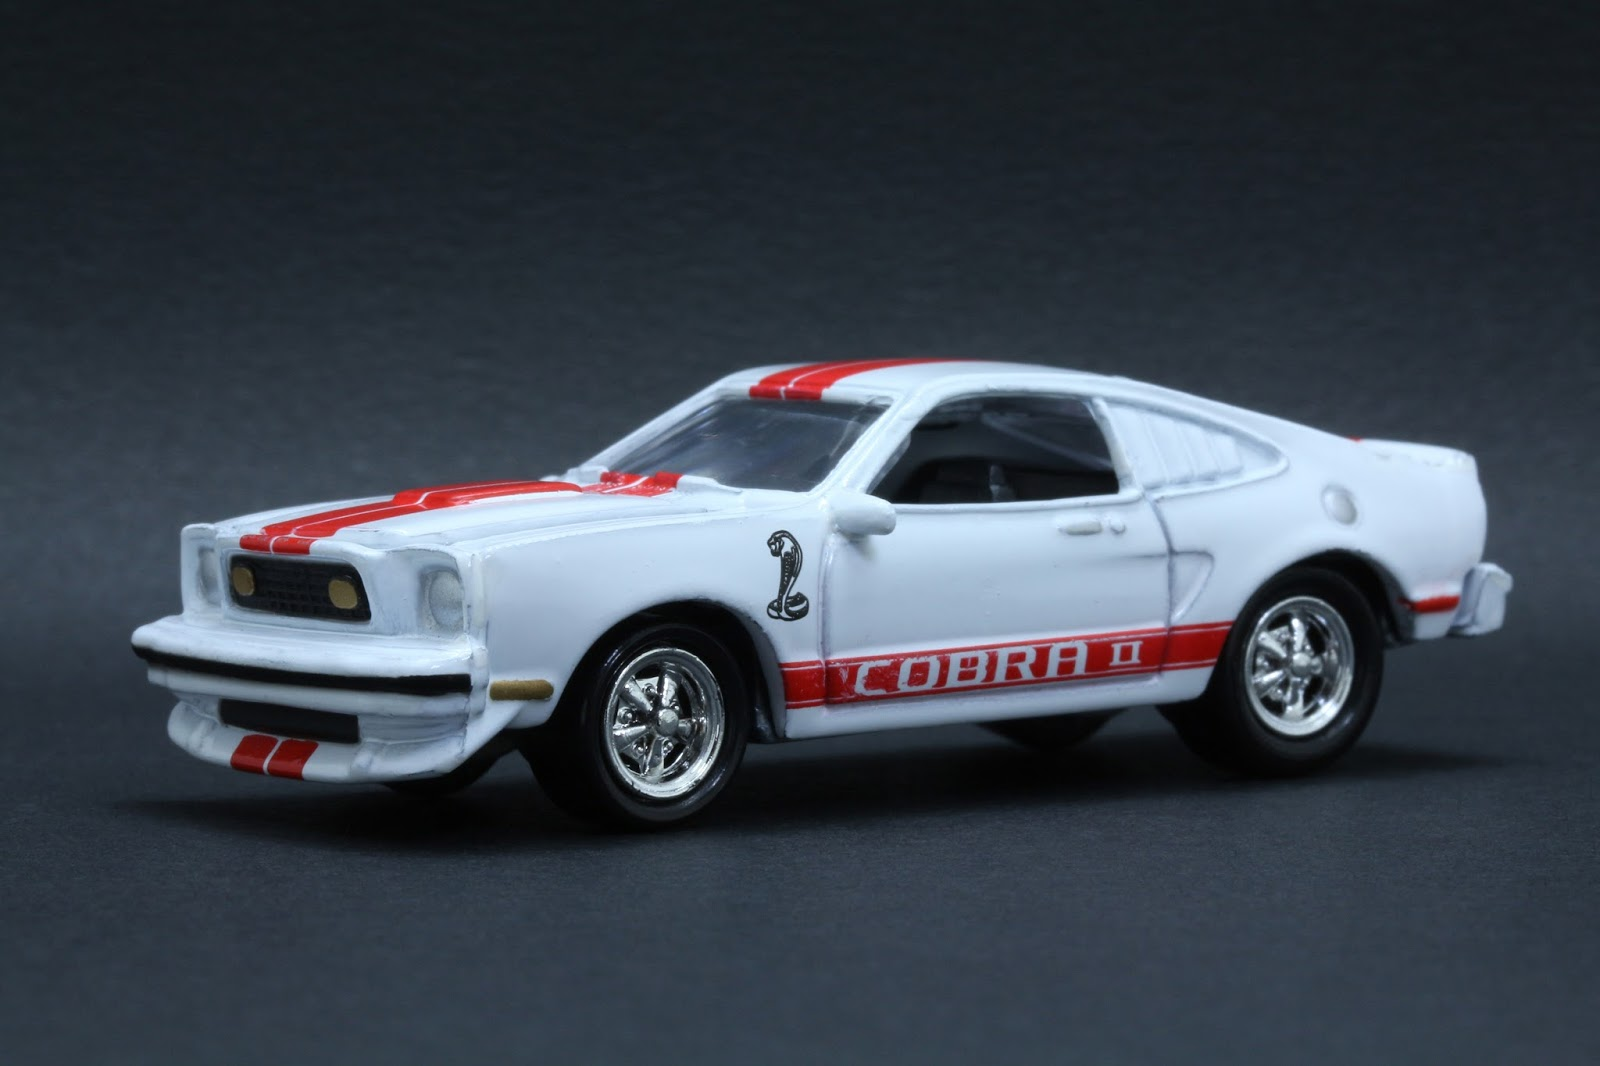 diecast hobbist 1977 ford mustang cobra ii. Black Bedroom Furniture Sets. Home Design Ideas